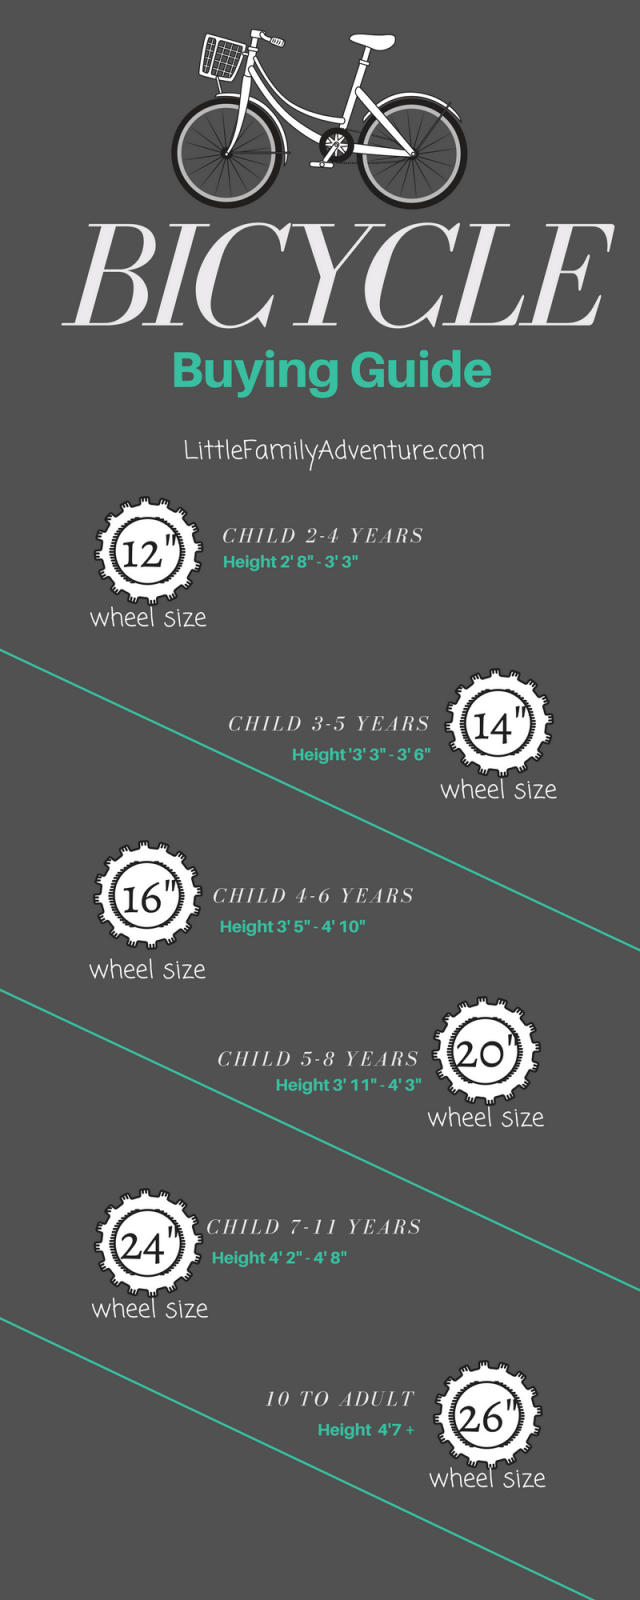 Bicycle Size Chart - Buying guide